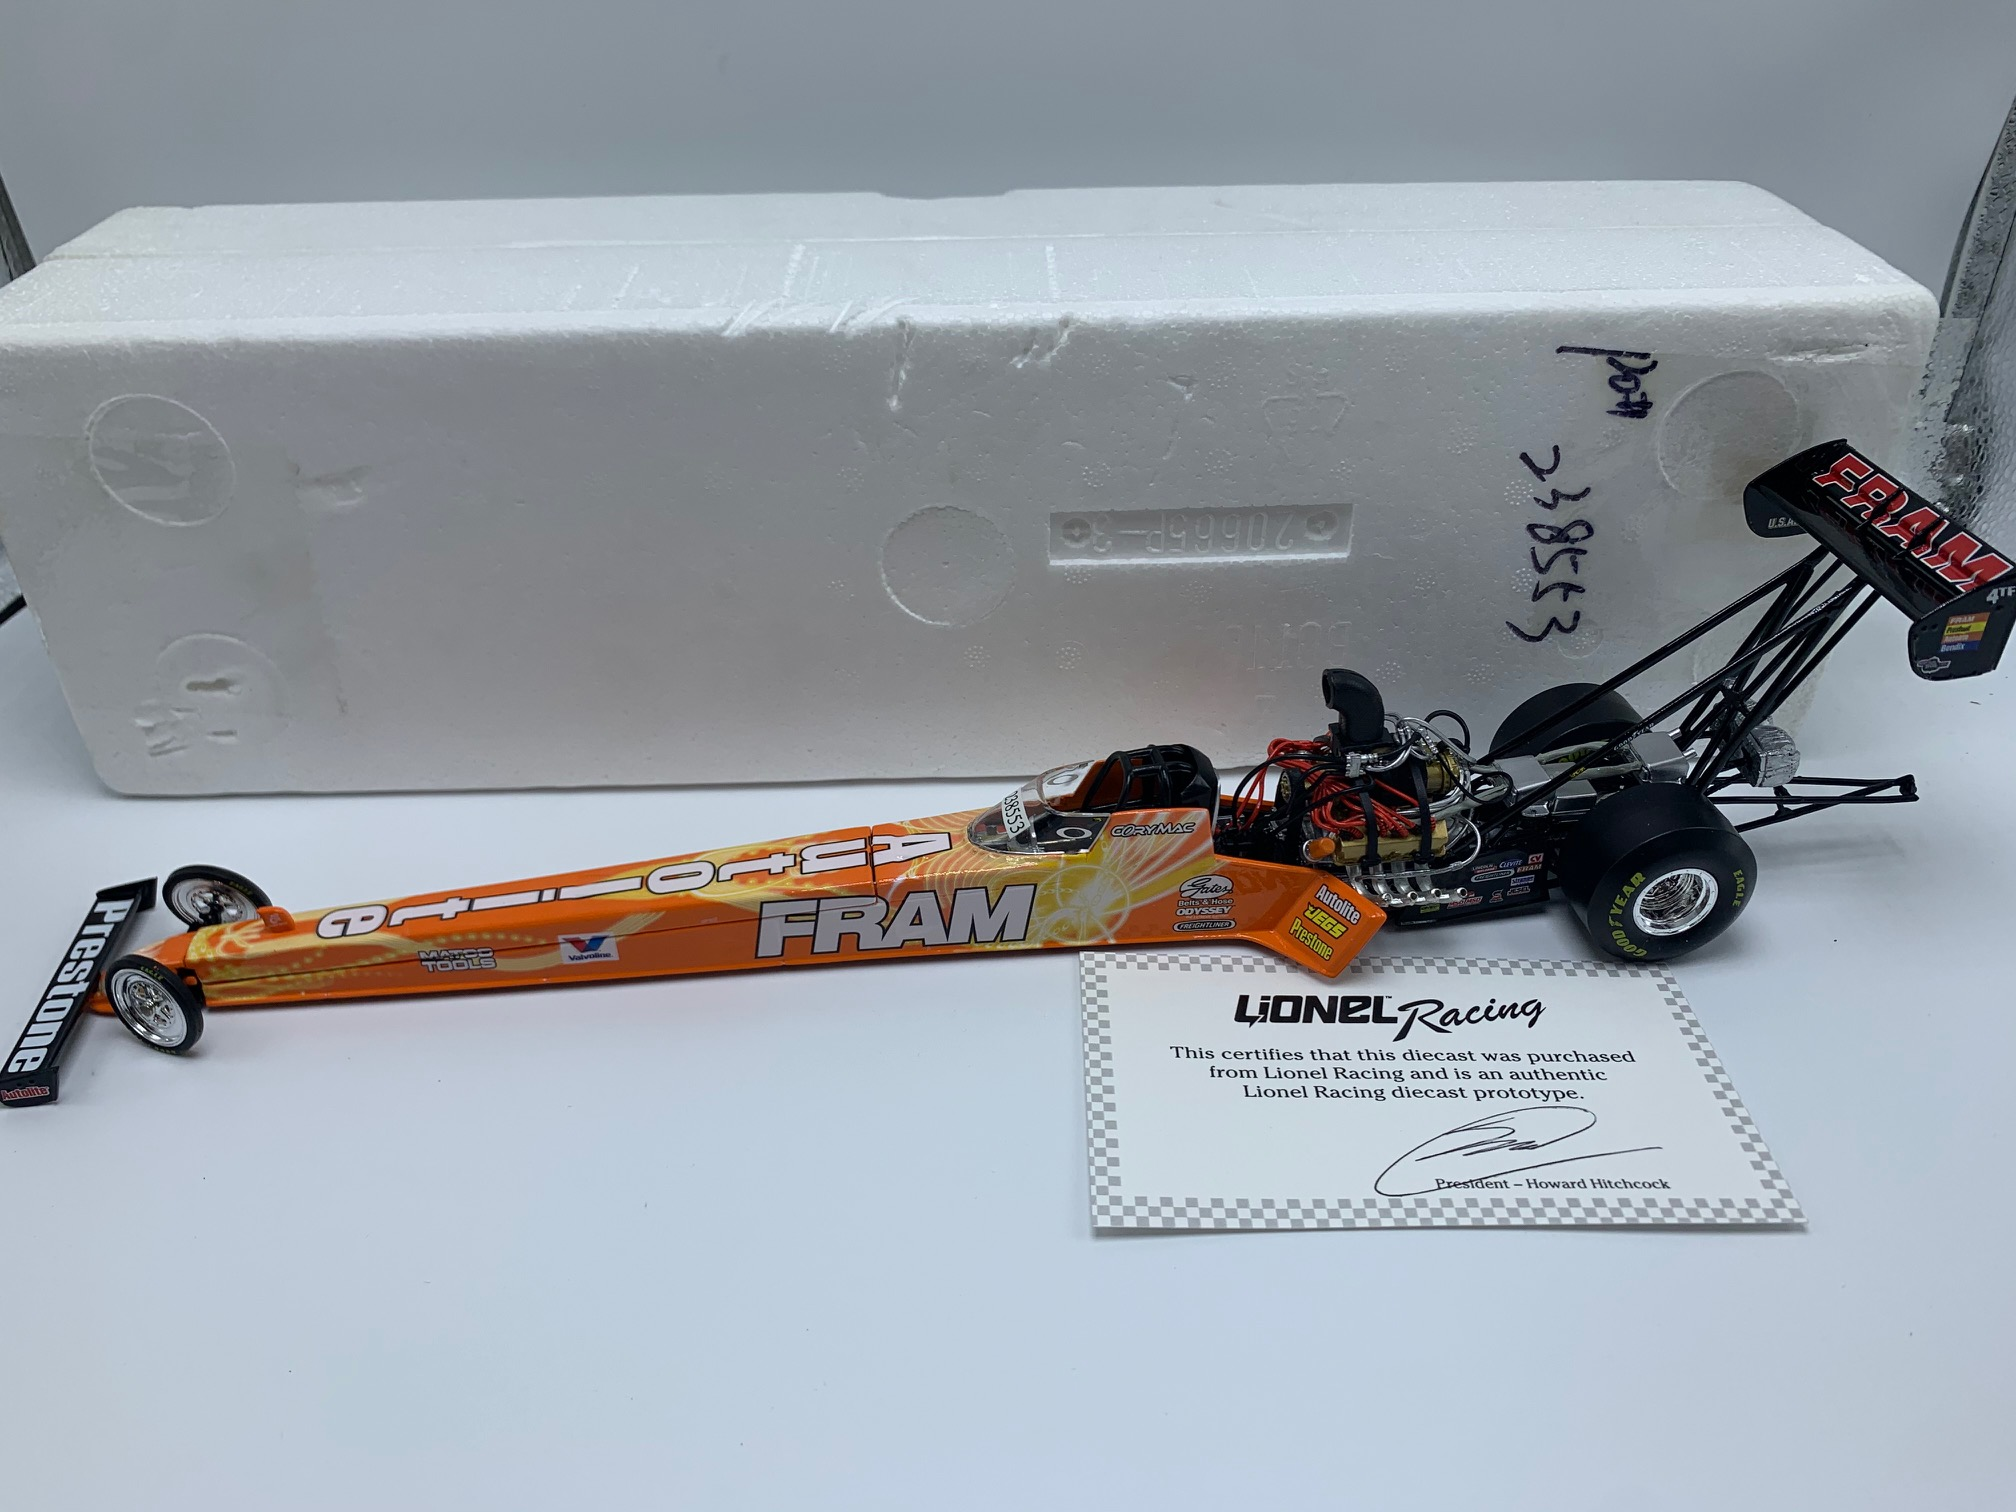 CORY MAC FRAM 1:24 NHRA DRAGSTER PROTOTYPE DIECAST!